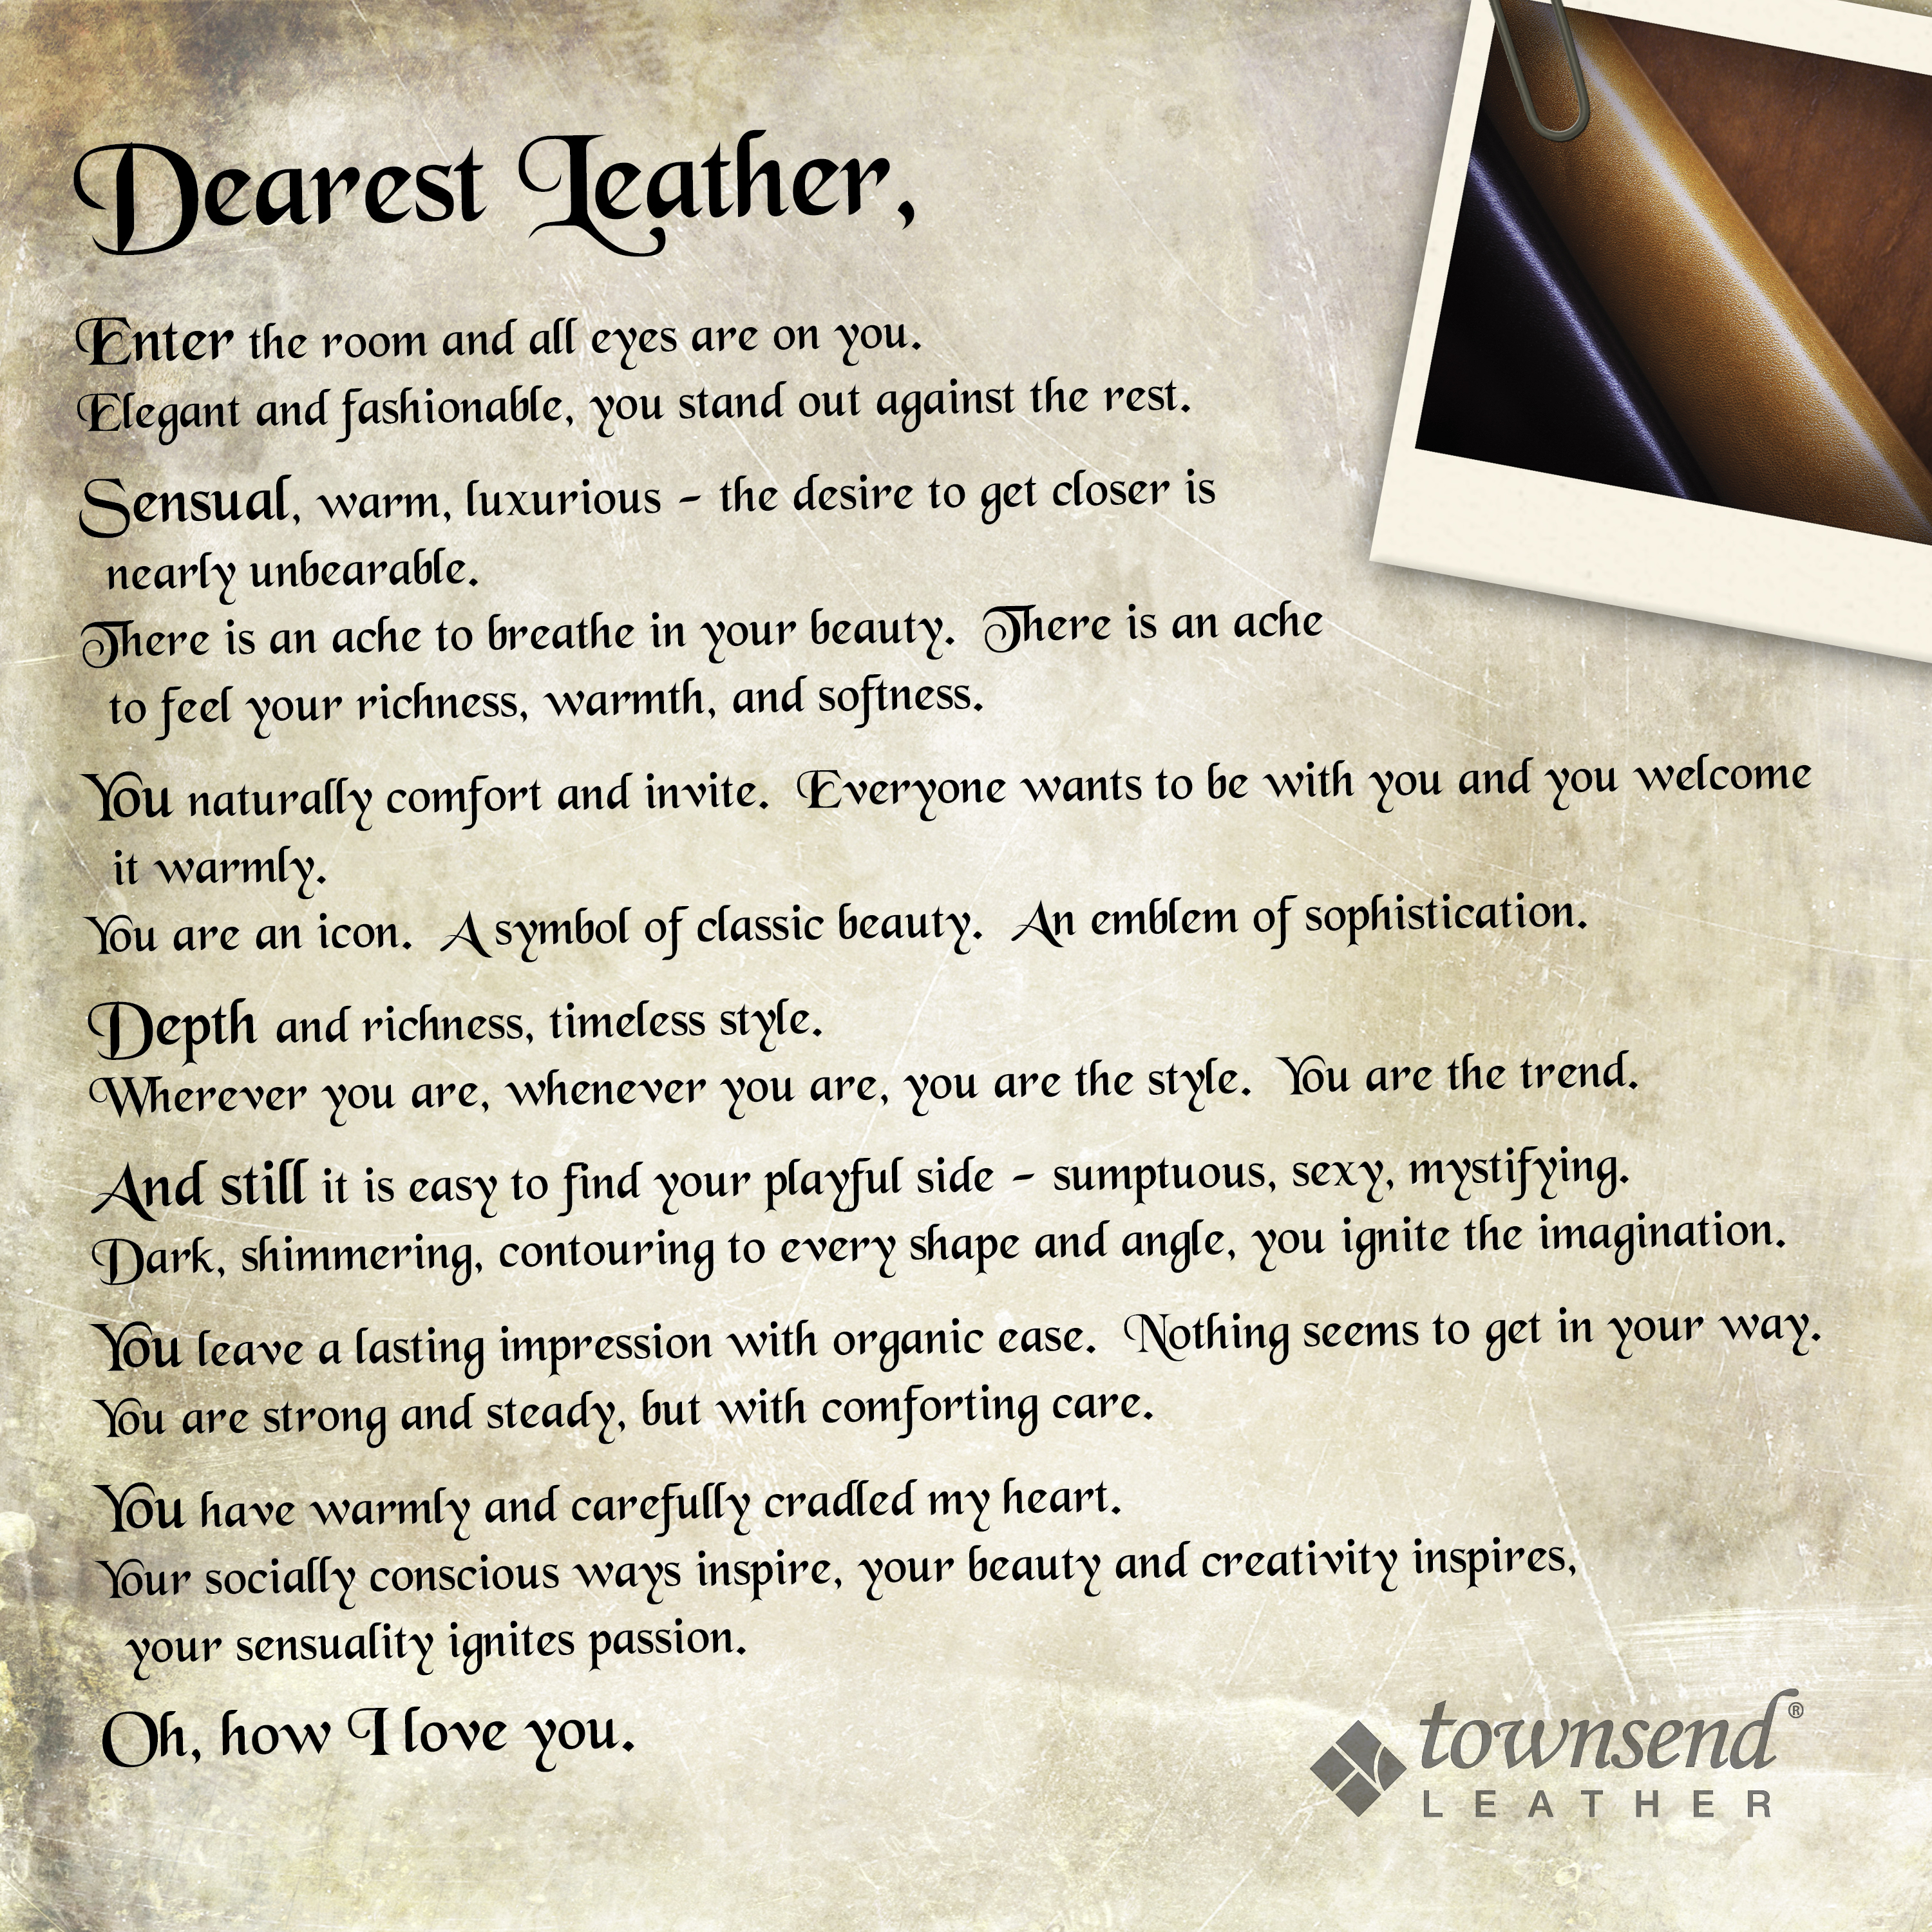 how to end a love letter for the of leather reason 10 it is so easy to 22293 | Dearest Leather TownsendLeather